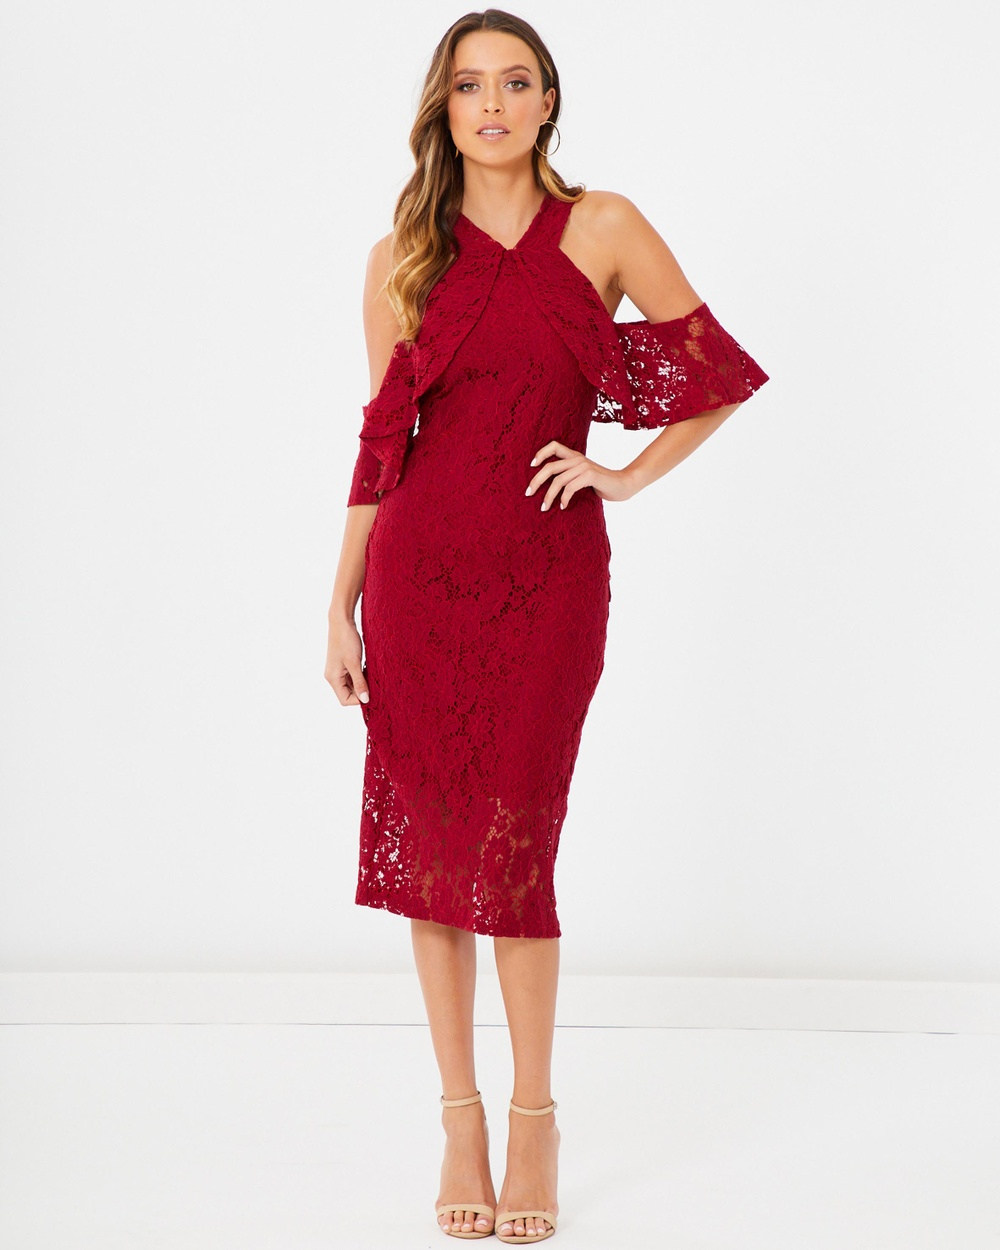 Photo of Tussah Deep Red Elizabeth Lace Dress - beautiful dress from Tussah online